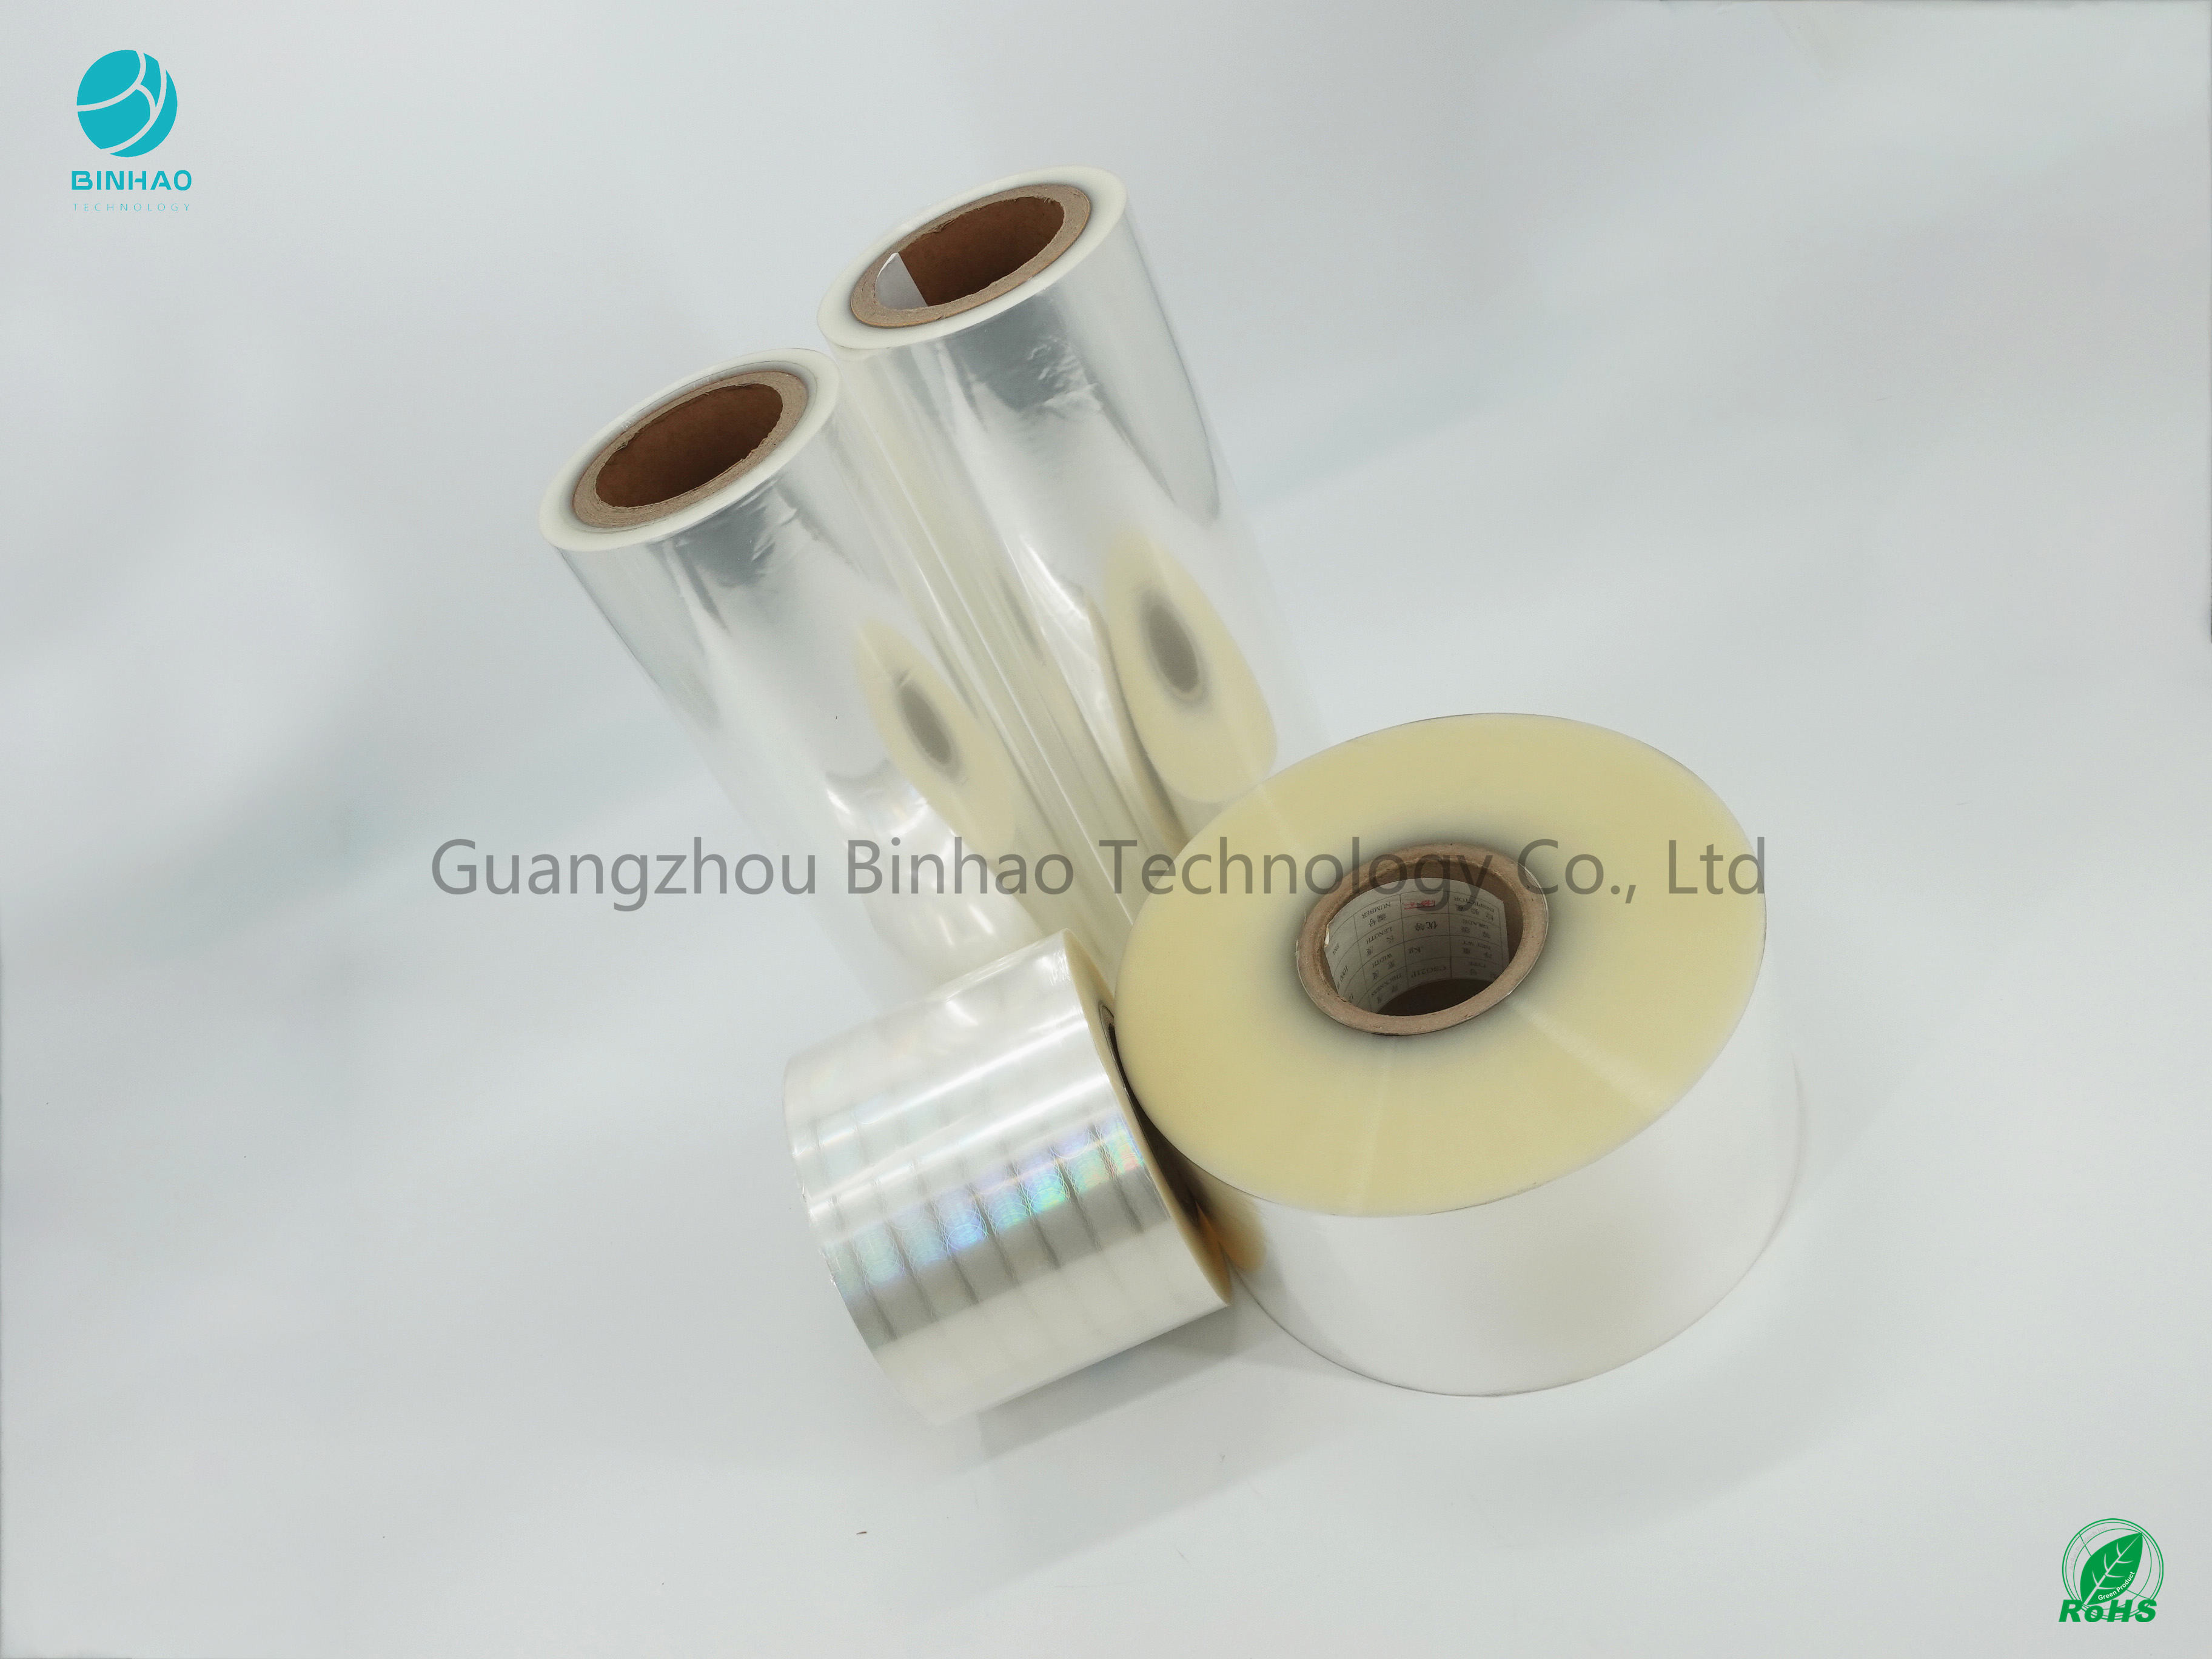 BOPP Film Roll For Tobacco Packaing Strong Tensile No Bubble Wrinkle 5% Shrinkage Rate